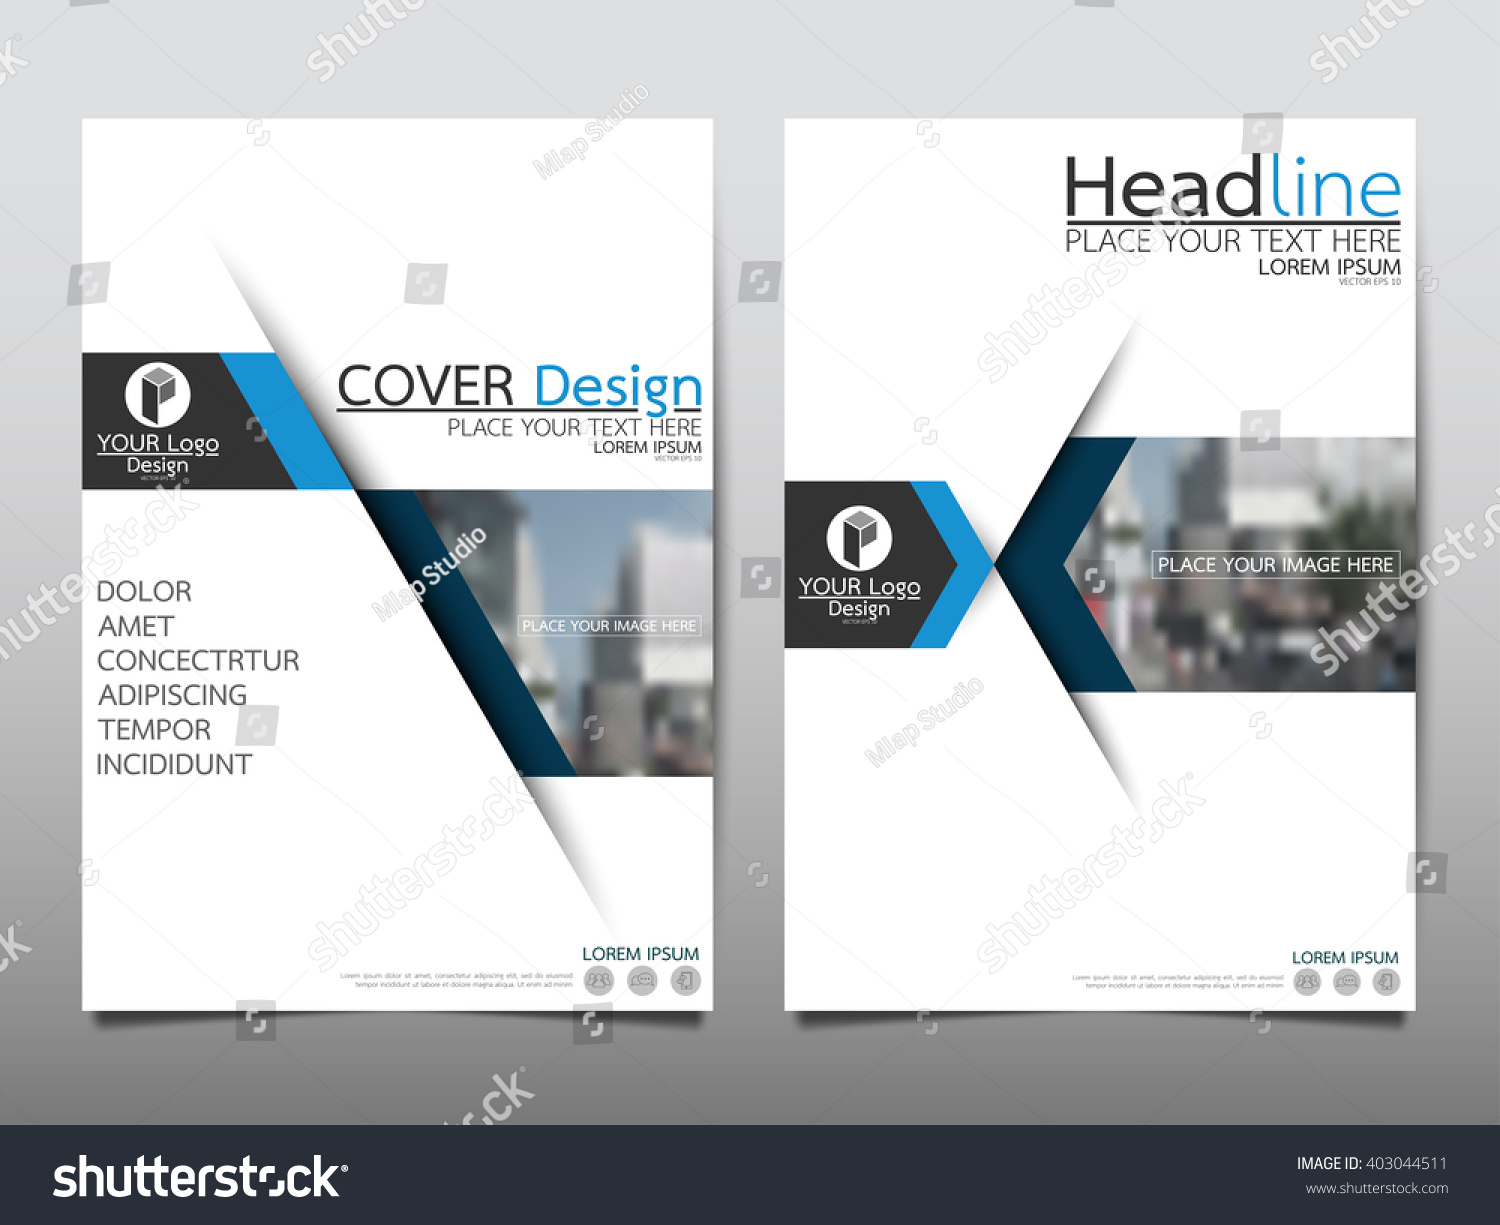 blue annual report brochure flyer design stock vector  blue annual report brochure flyer design template vector leaflet cover presentation abstract flat background